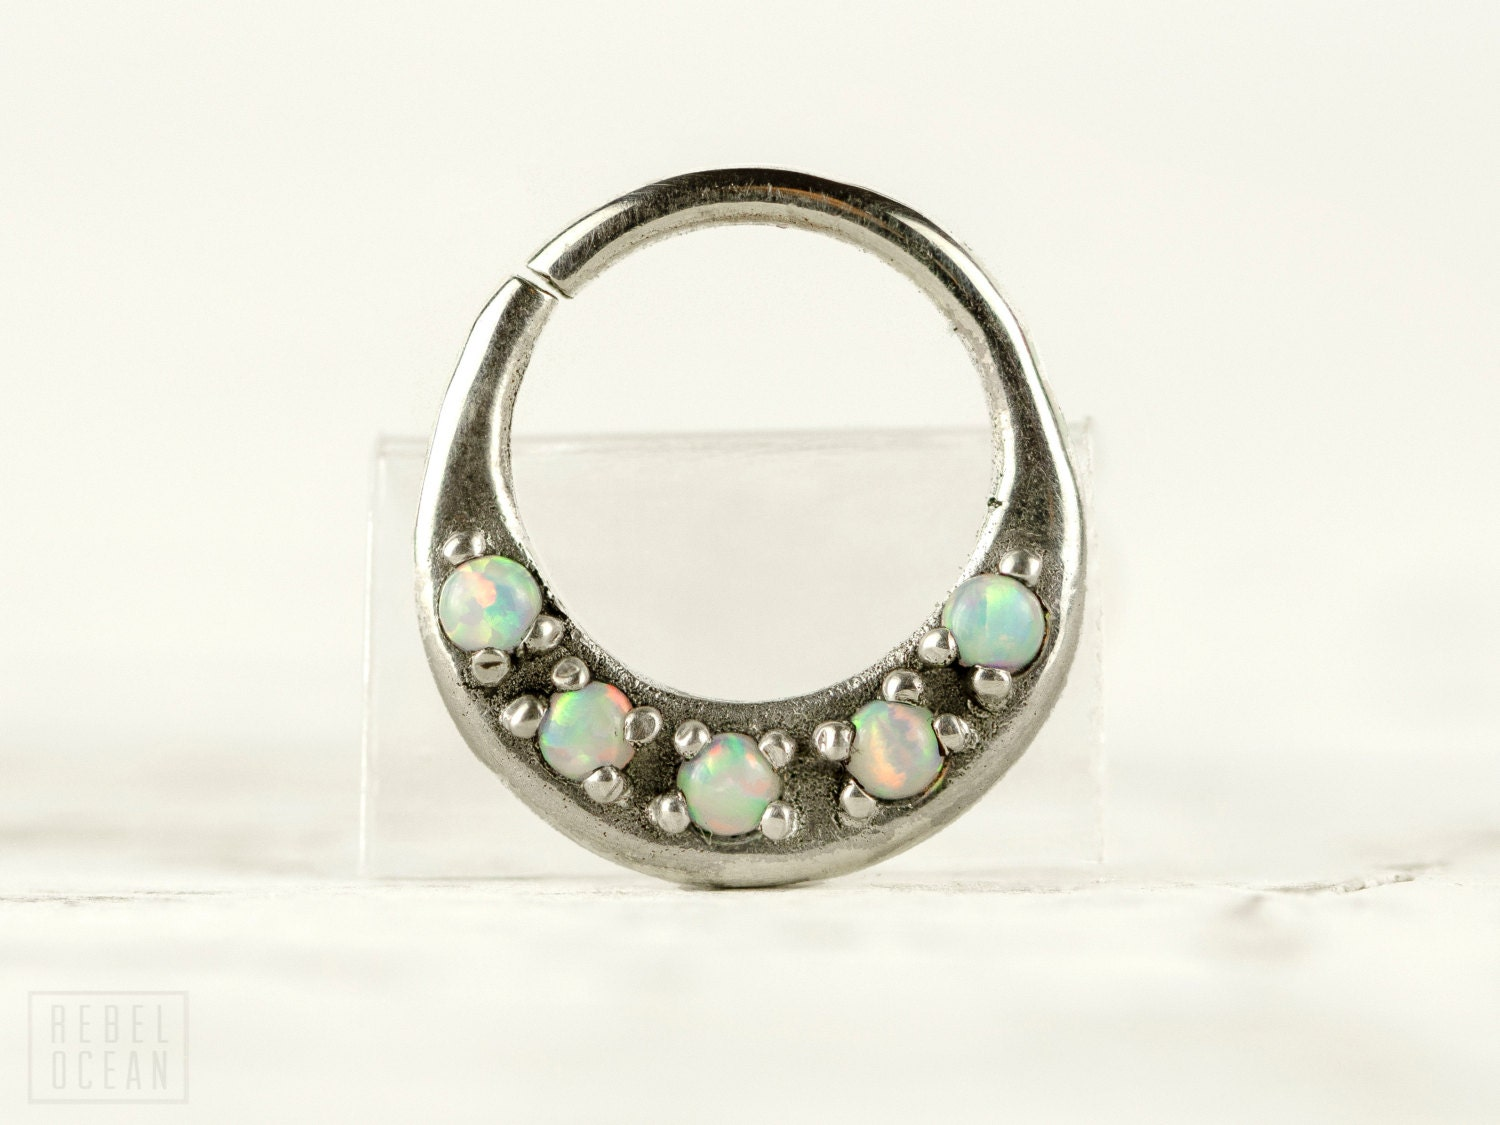 septum ring nose ring septum jewelry light blue opal